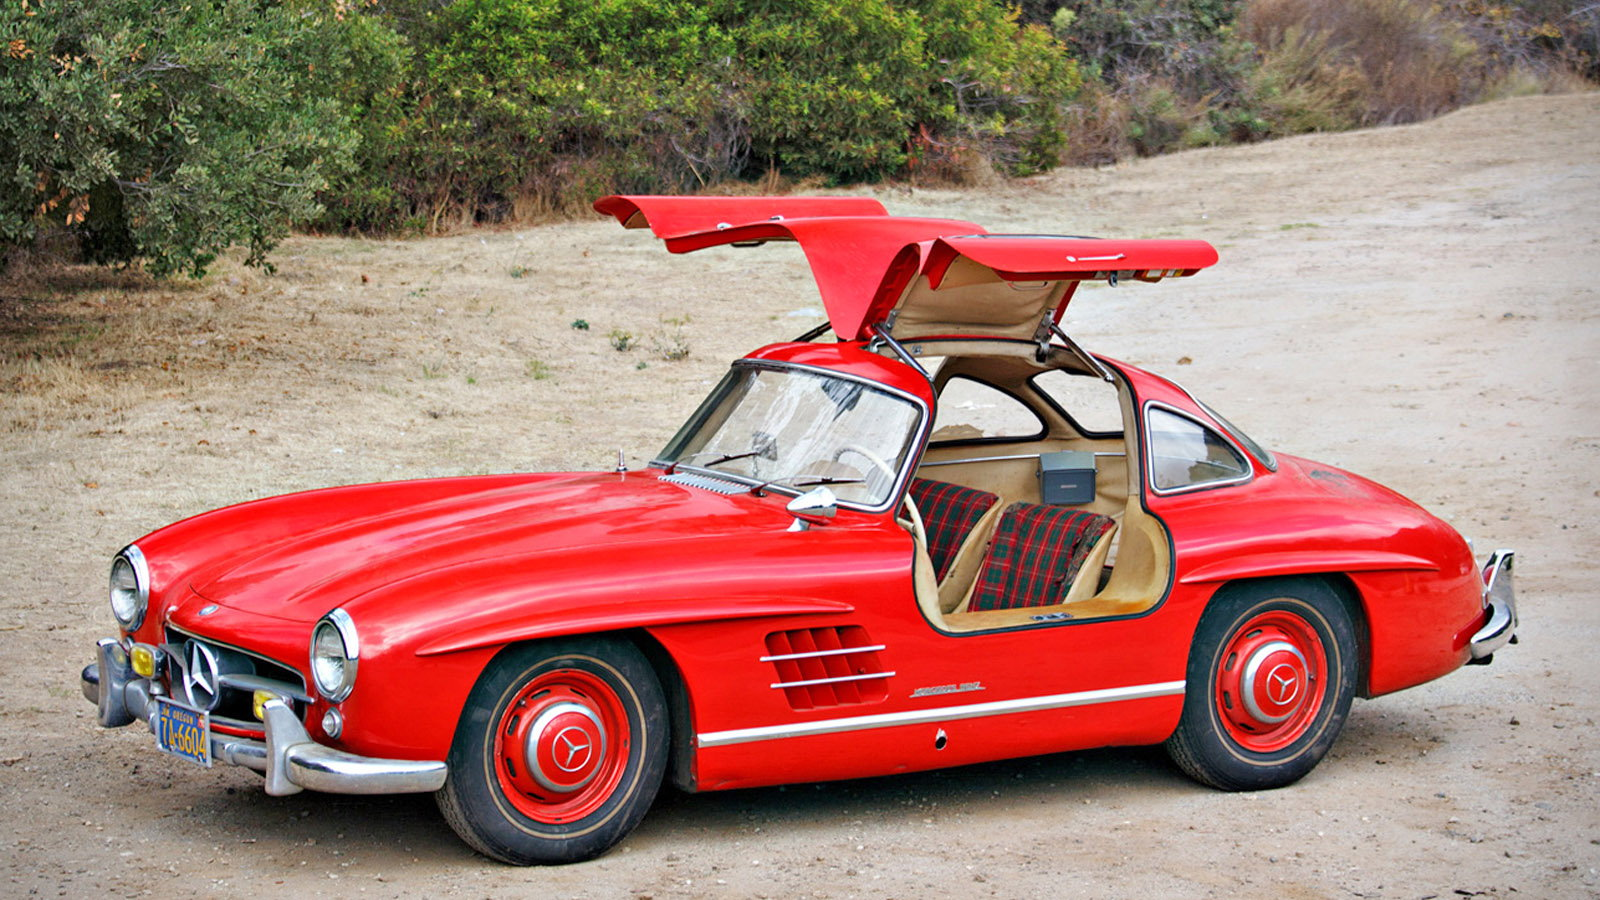 MB to Offer Parts for Classic Gullwing